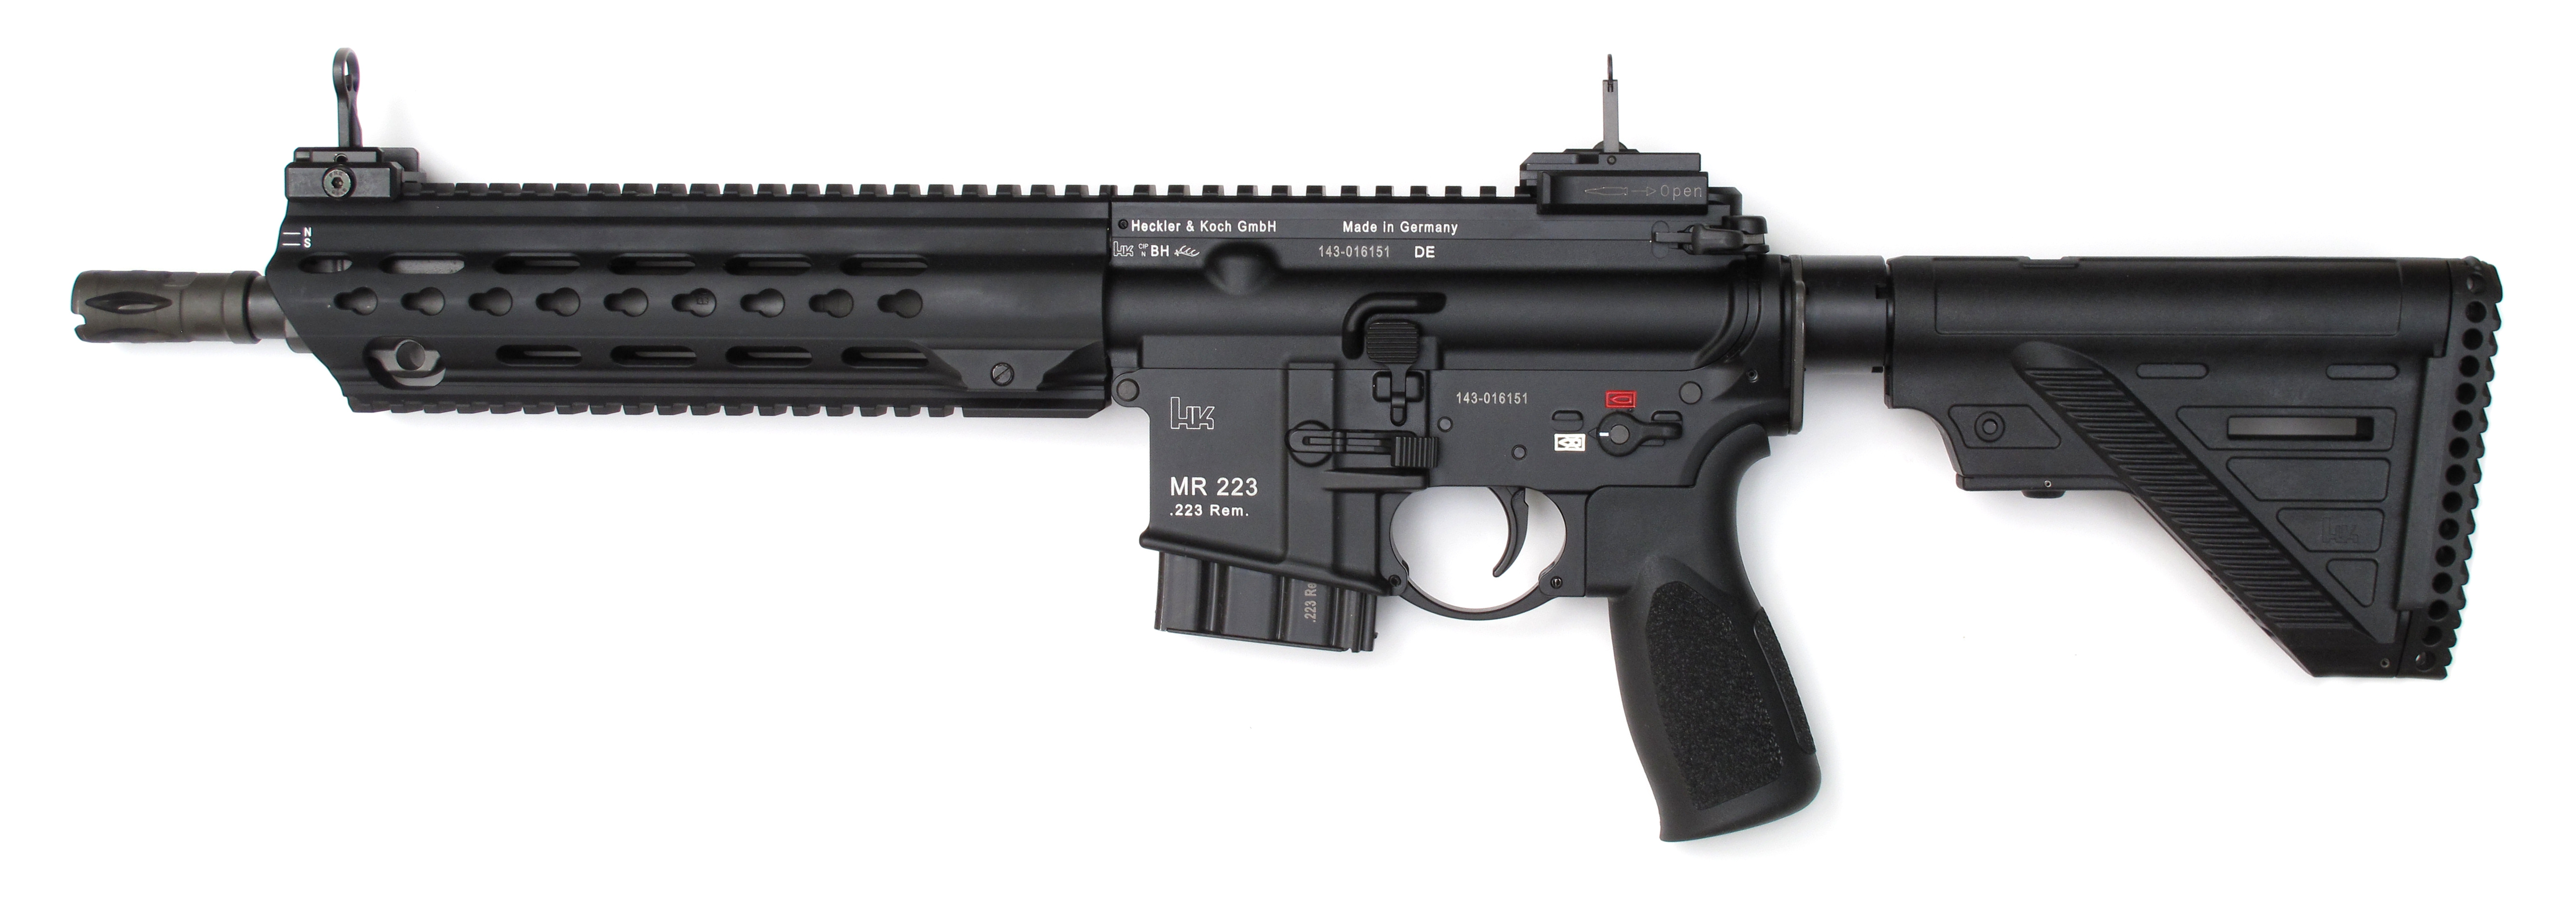 Carabine HK MR223 A3 Sporting Rifle en calibre 5,56 mm x 45 mm.